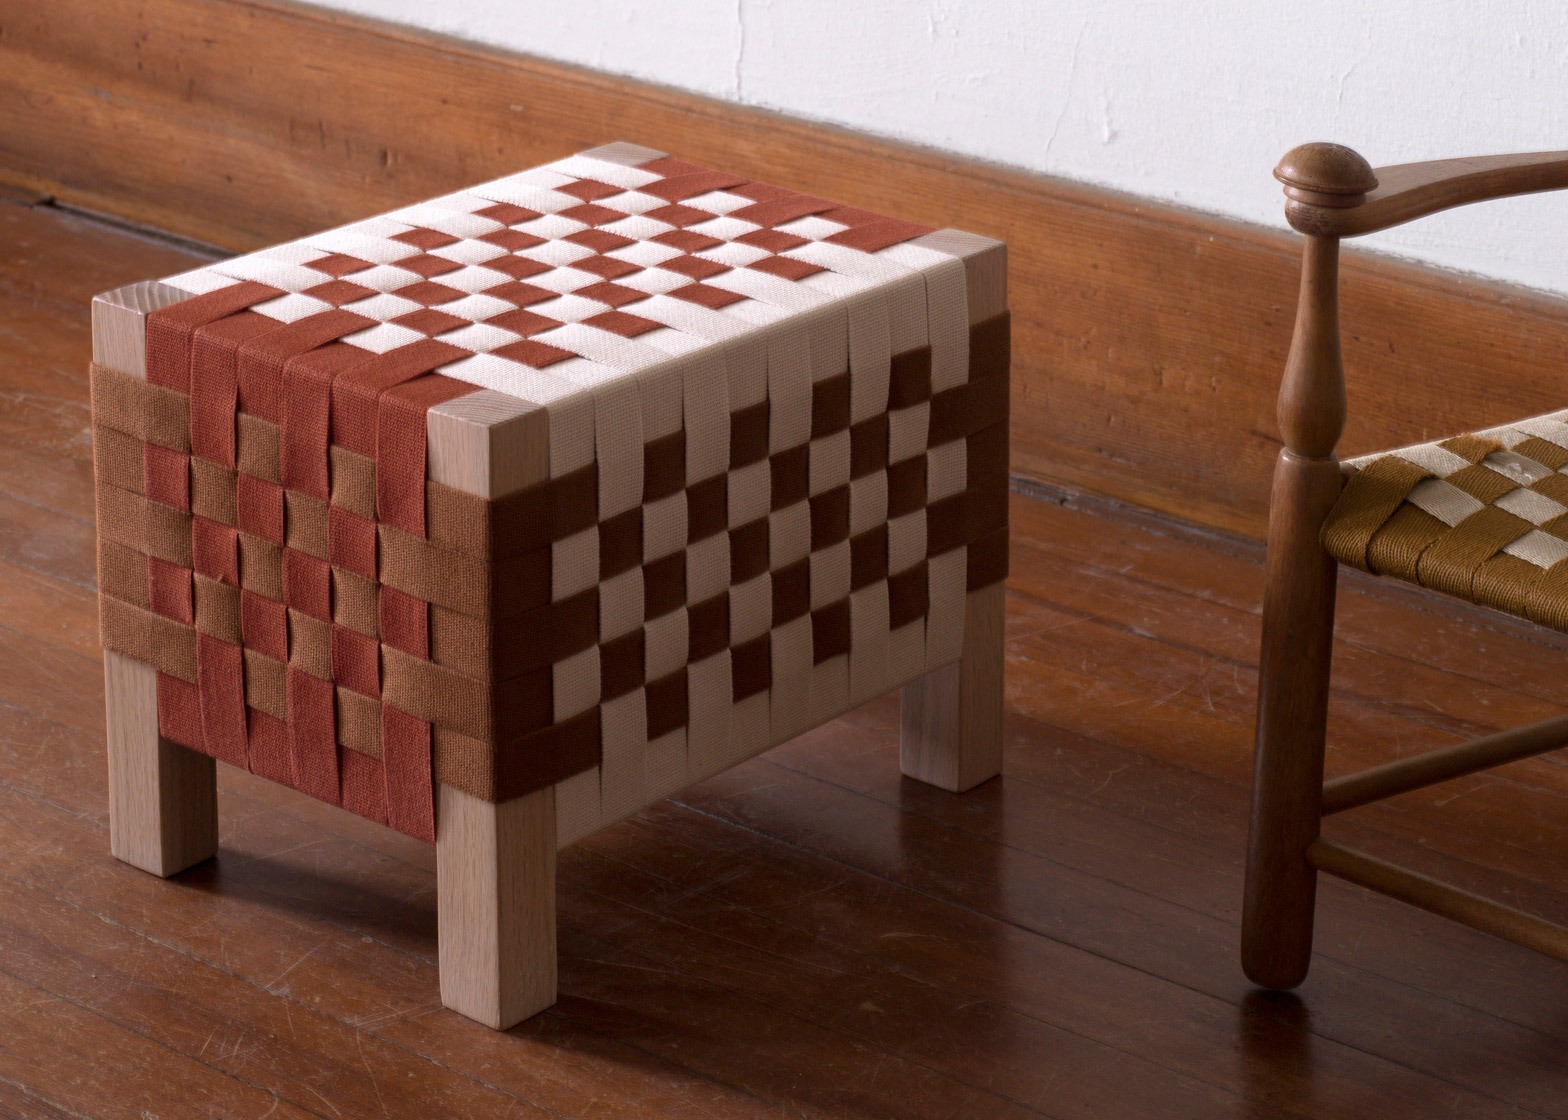 Furnishing Utopia furniture and homeware influenced by Shaker designs